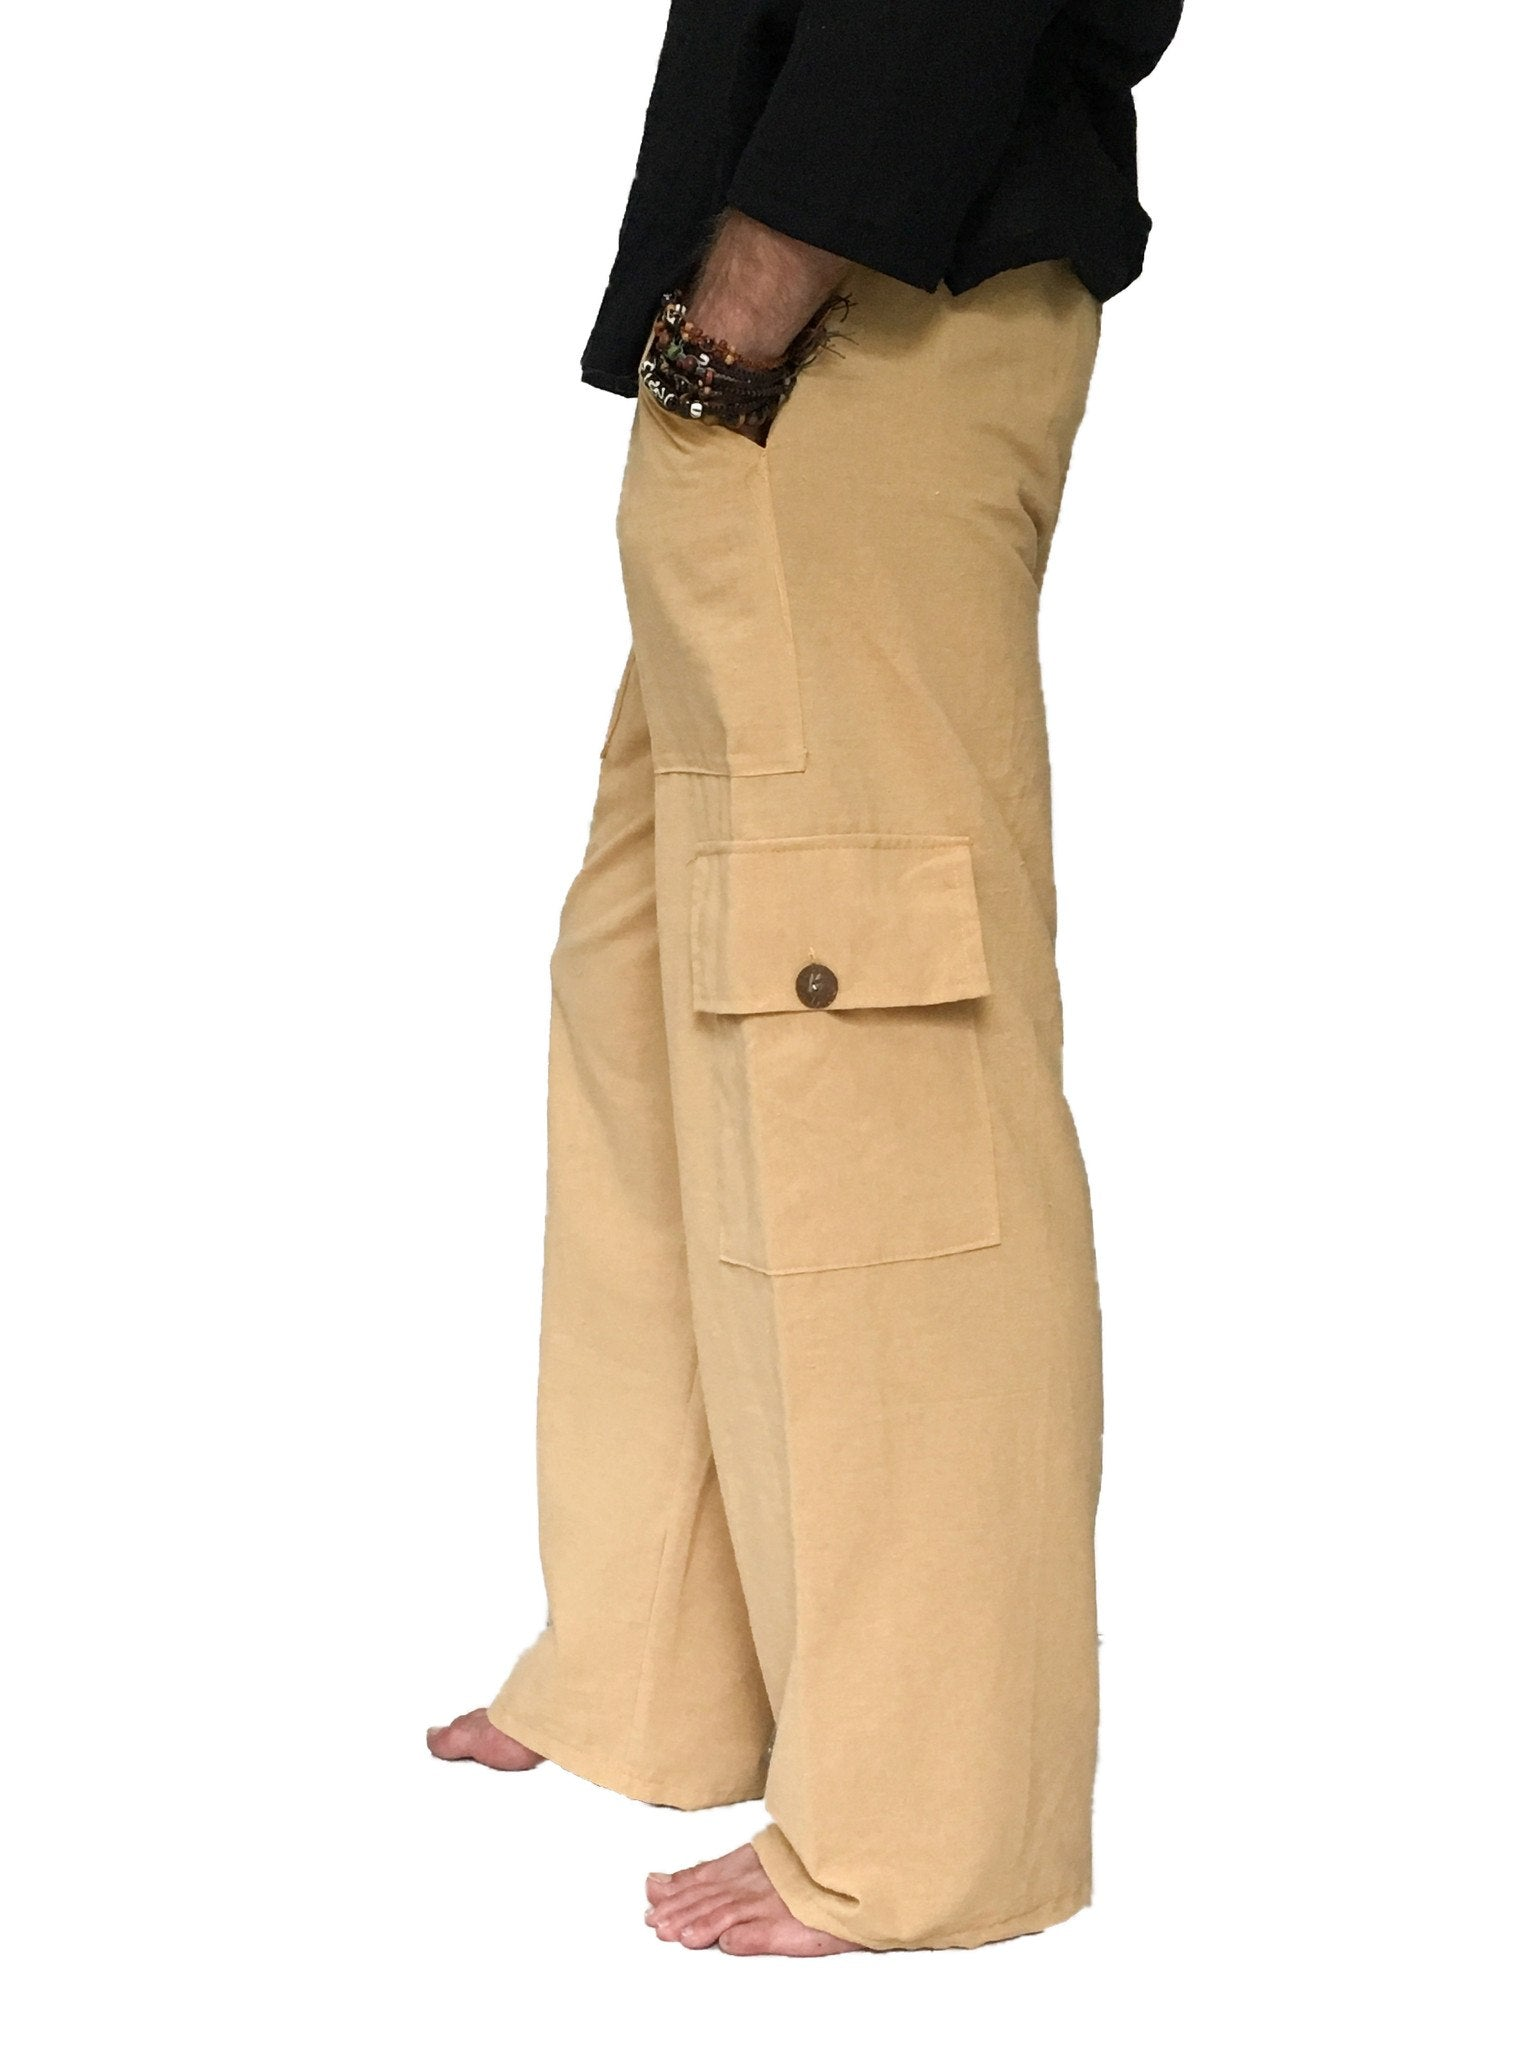 Men's Wear - Men's Cargo Pants 100% Cotton One Size